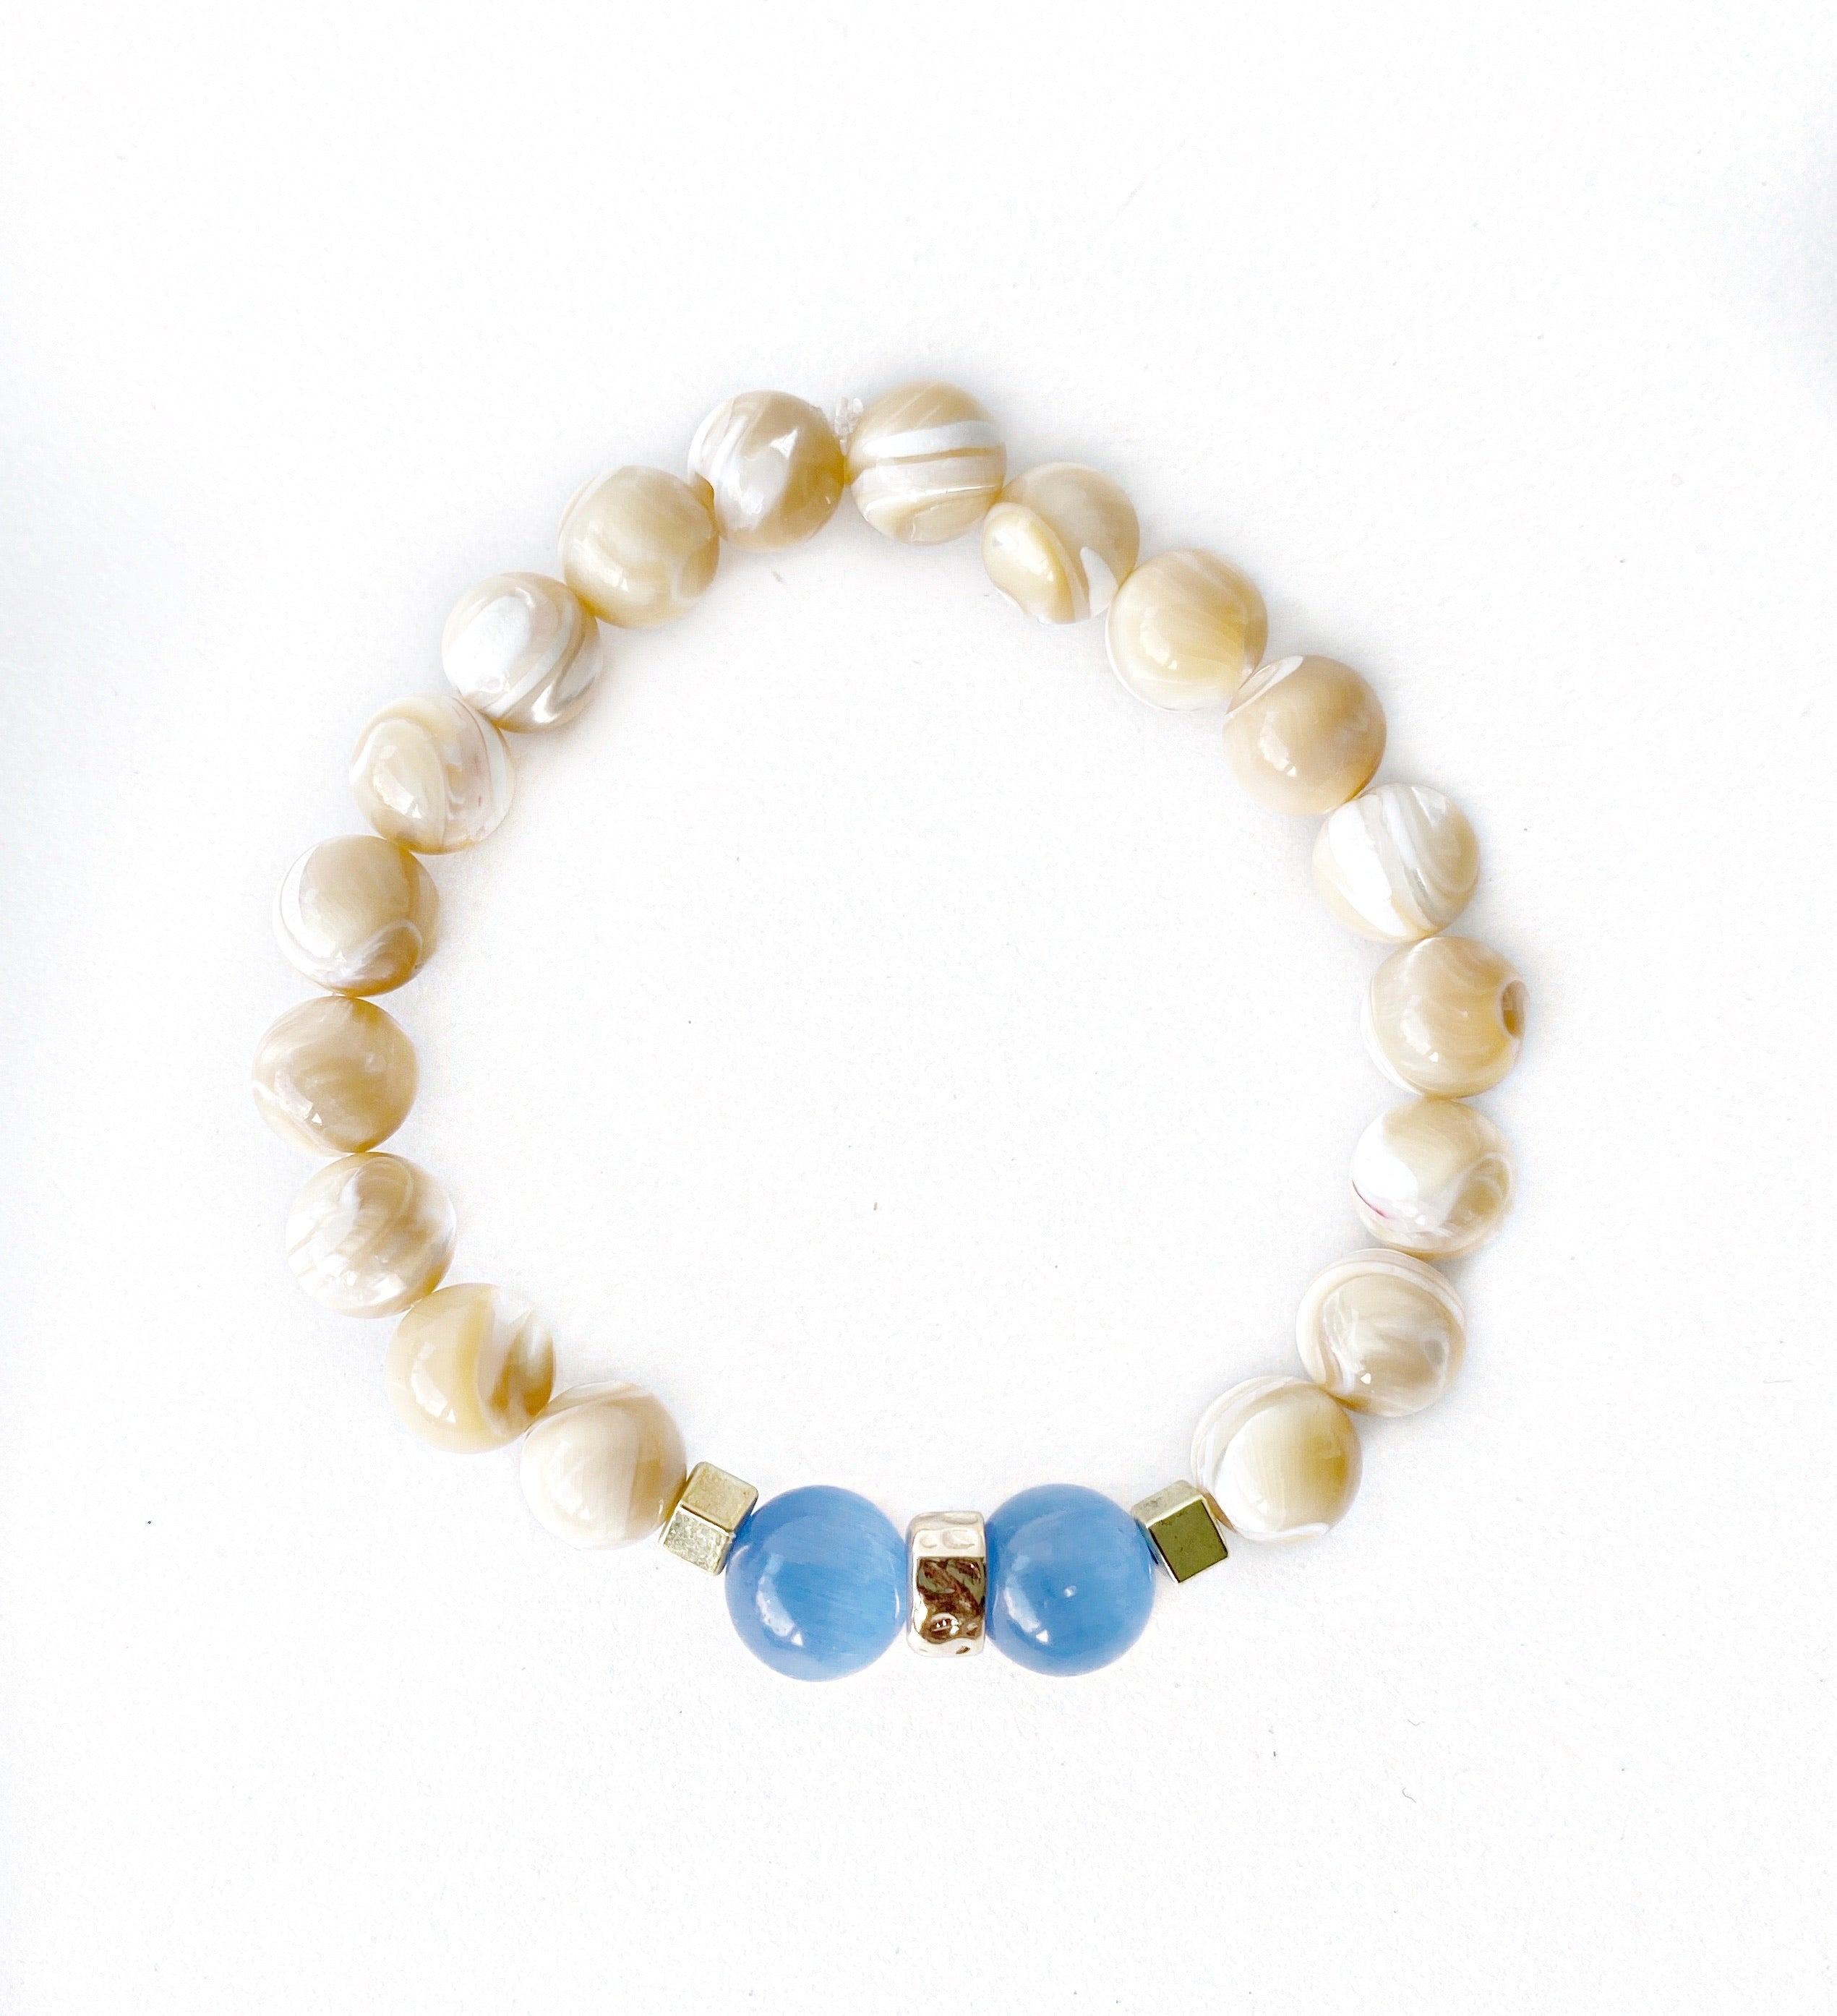 Natural Mother of Pearl & Sapphire Cat's Eye Bracelet Stack